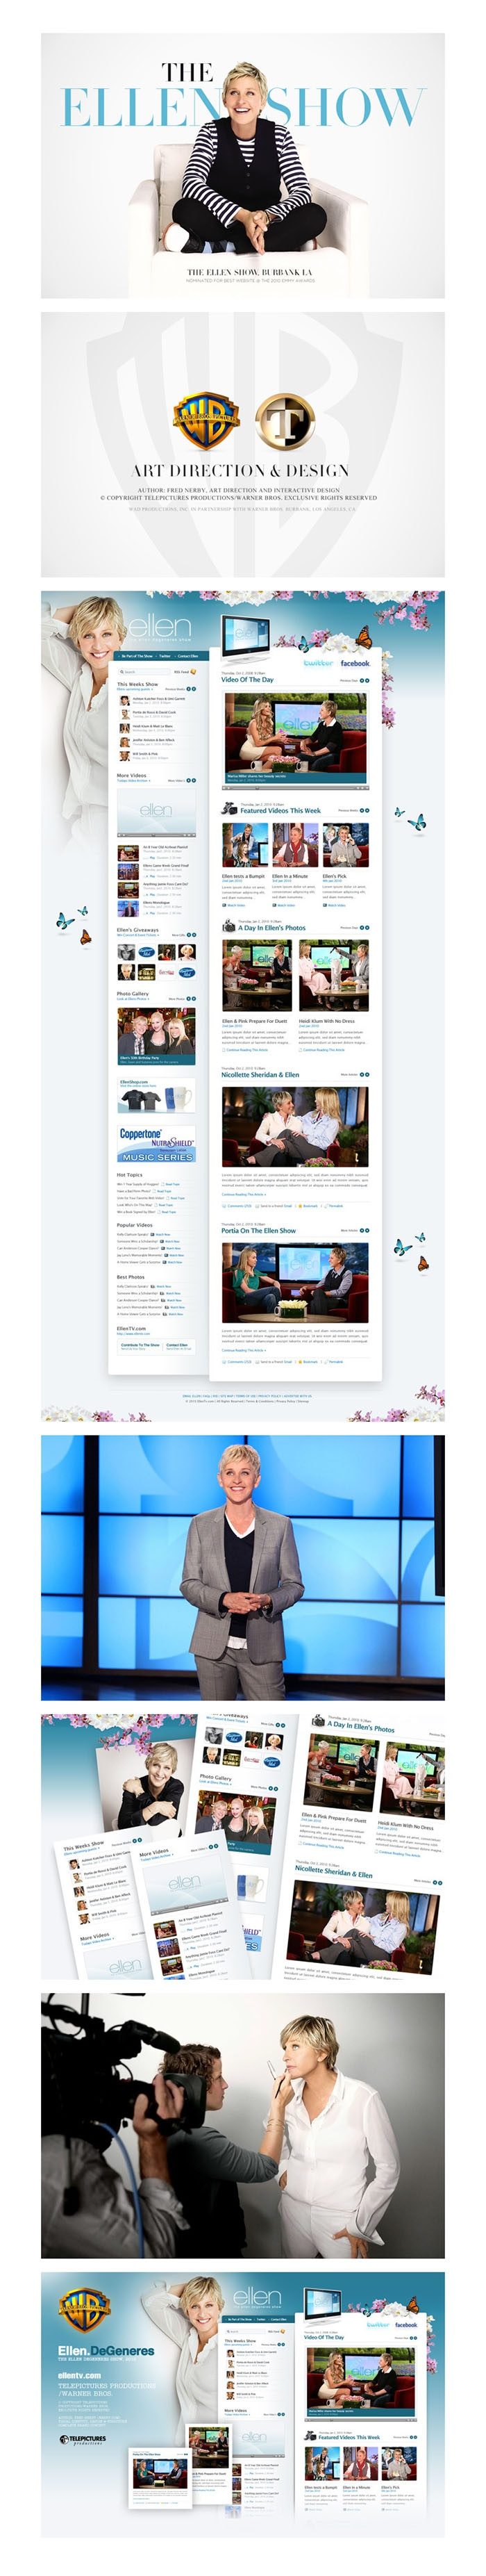 The Ellen Show Website, Warner Bros, Telepictures by Fred Nerby, via Behance *** Design of Ellen DeGeneres Show 2010 website. Copyright Warner Bros & Telepictures Productions. All rights reserved. Author Fred Nerby, Art Direction & Design